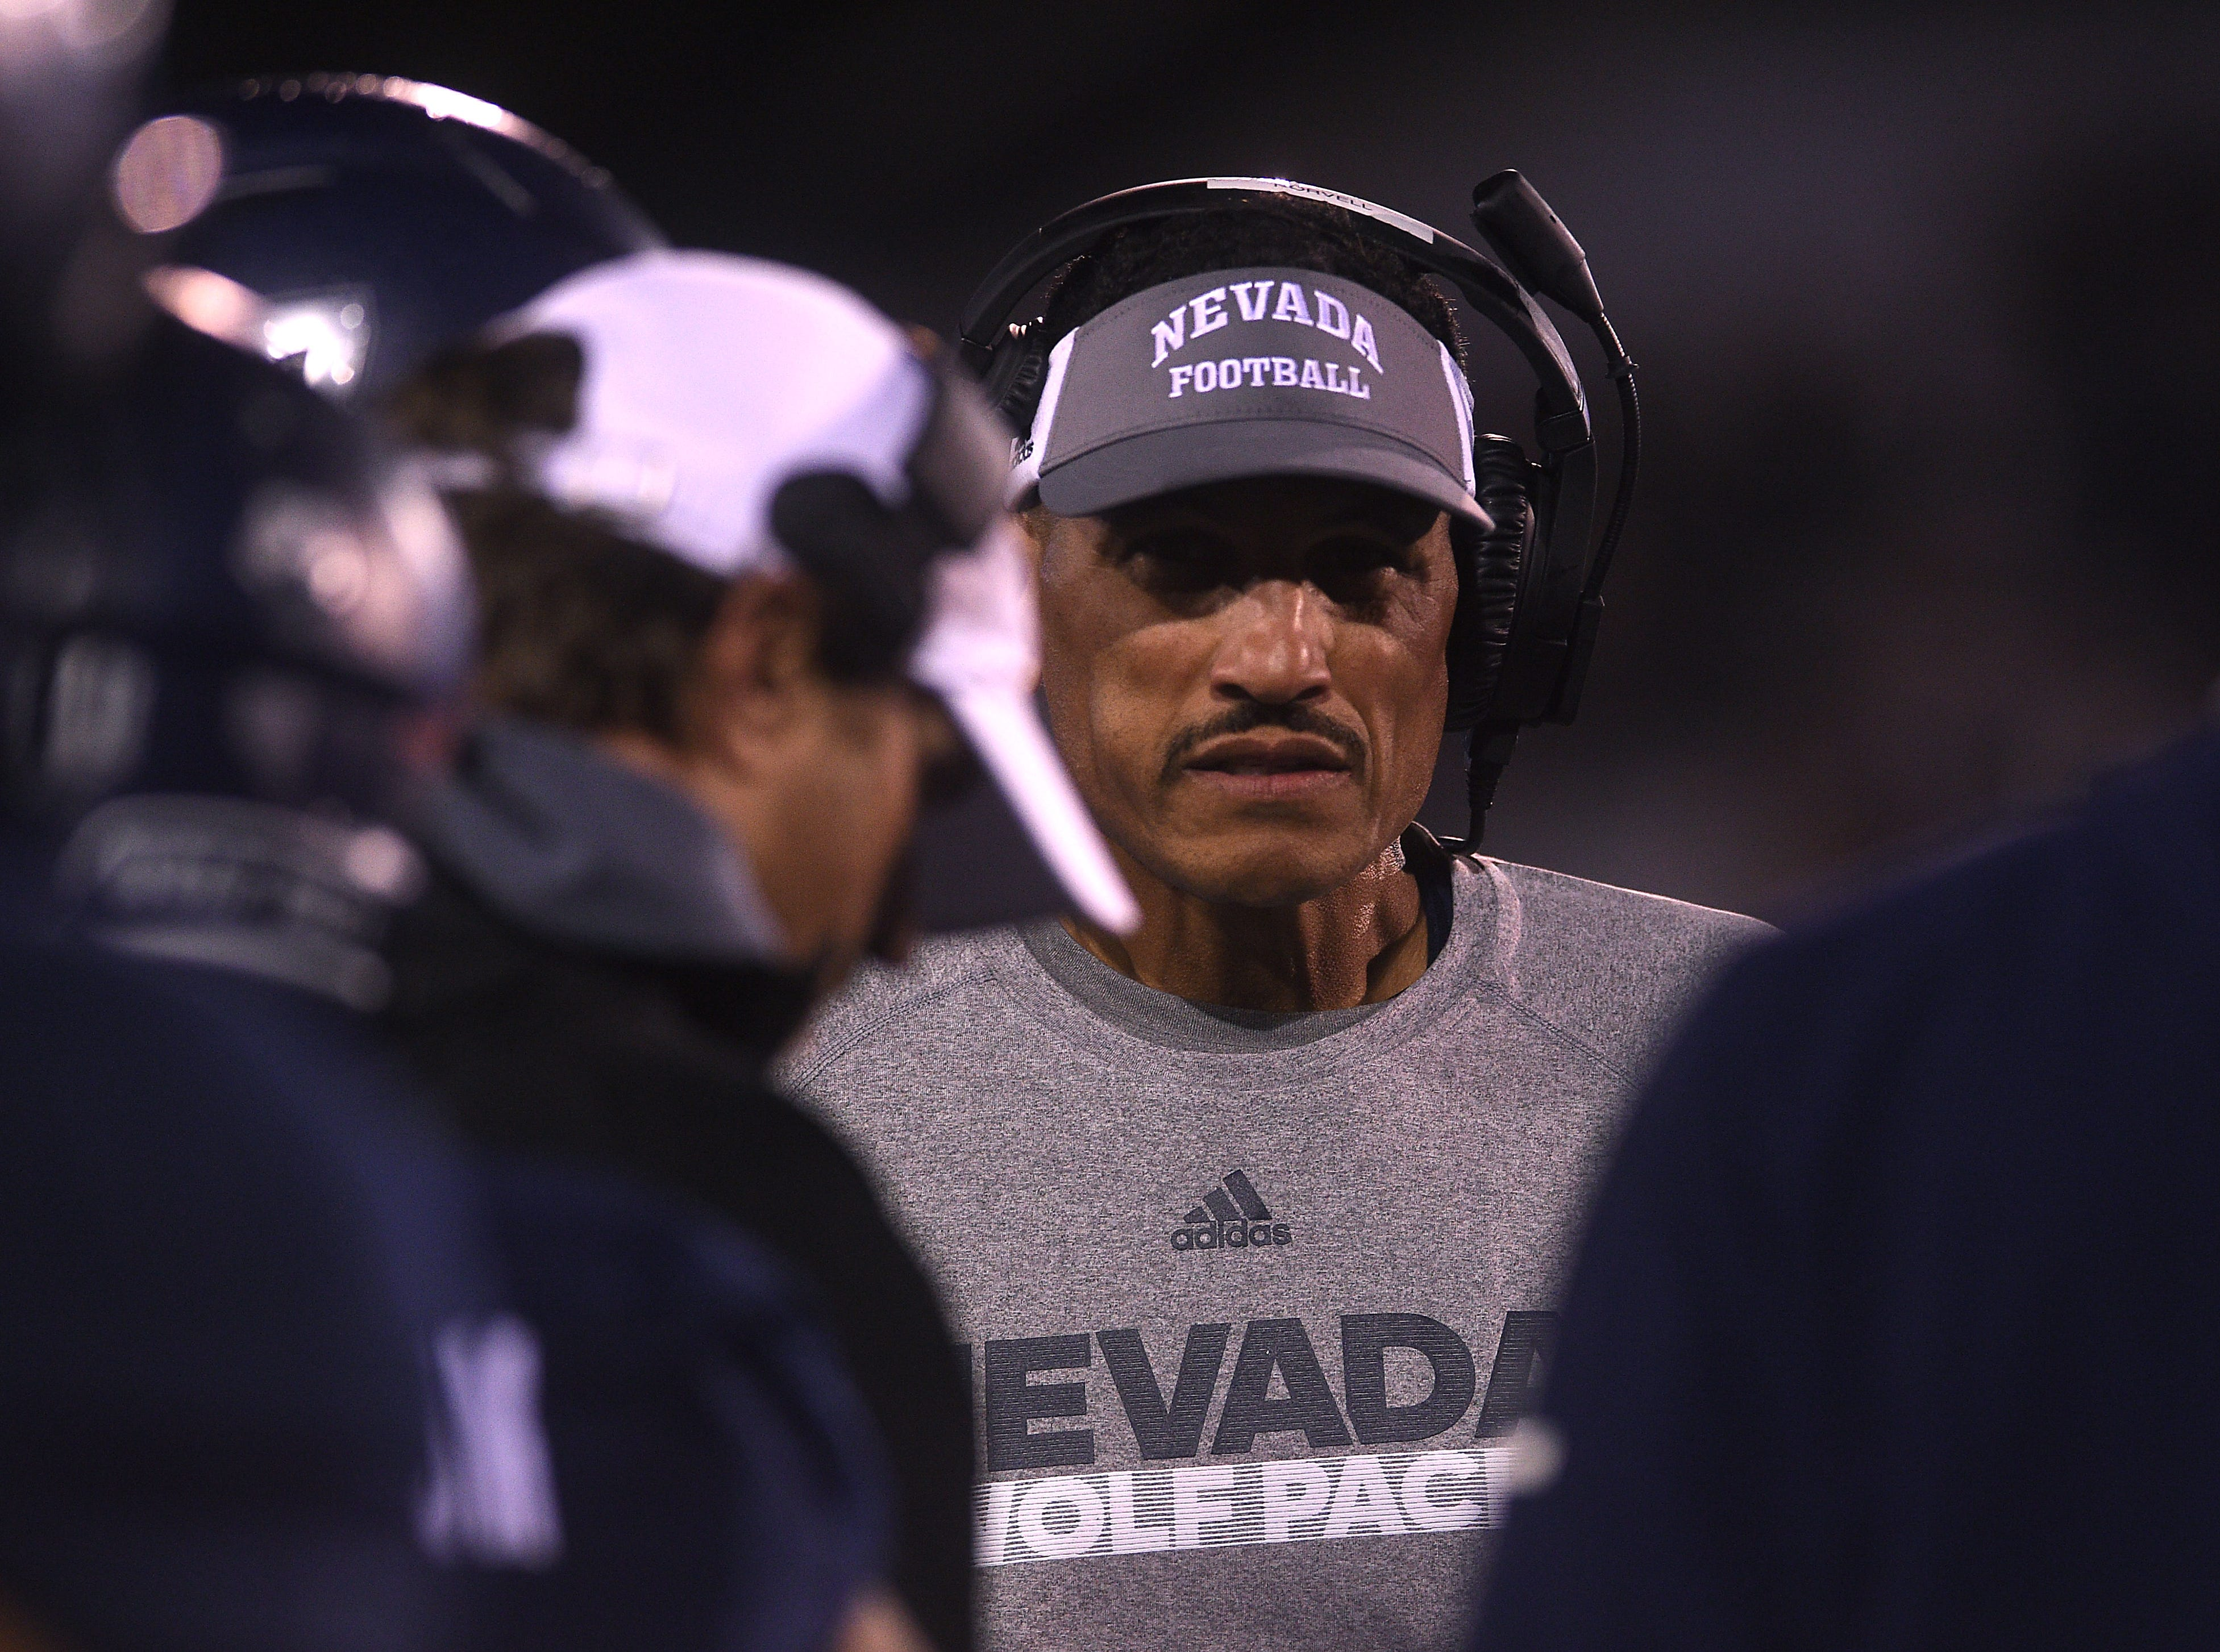 Nevada head coach Jay Norvell takes on Fresno St. during their football game at Mackay Stadium in Reno on Oct. 6, 2018.